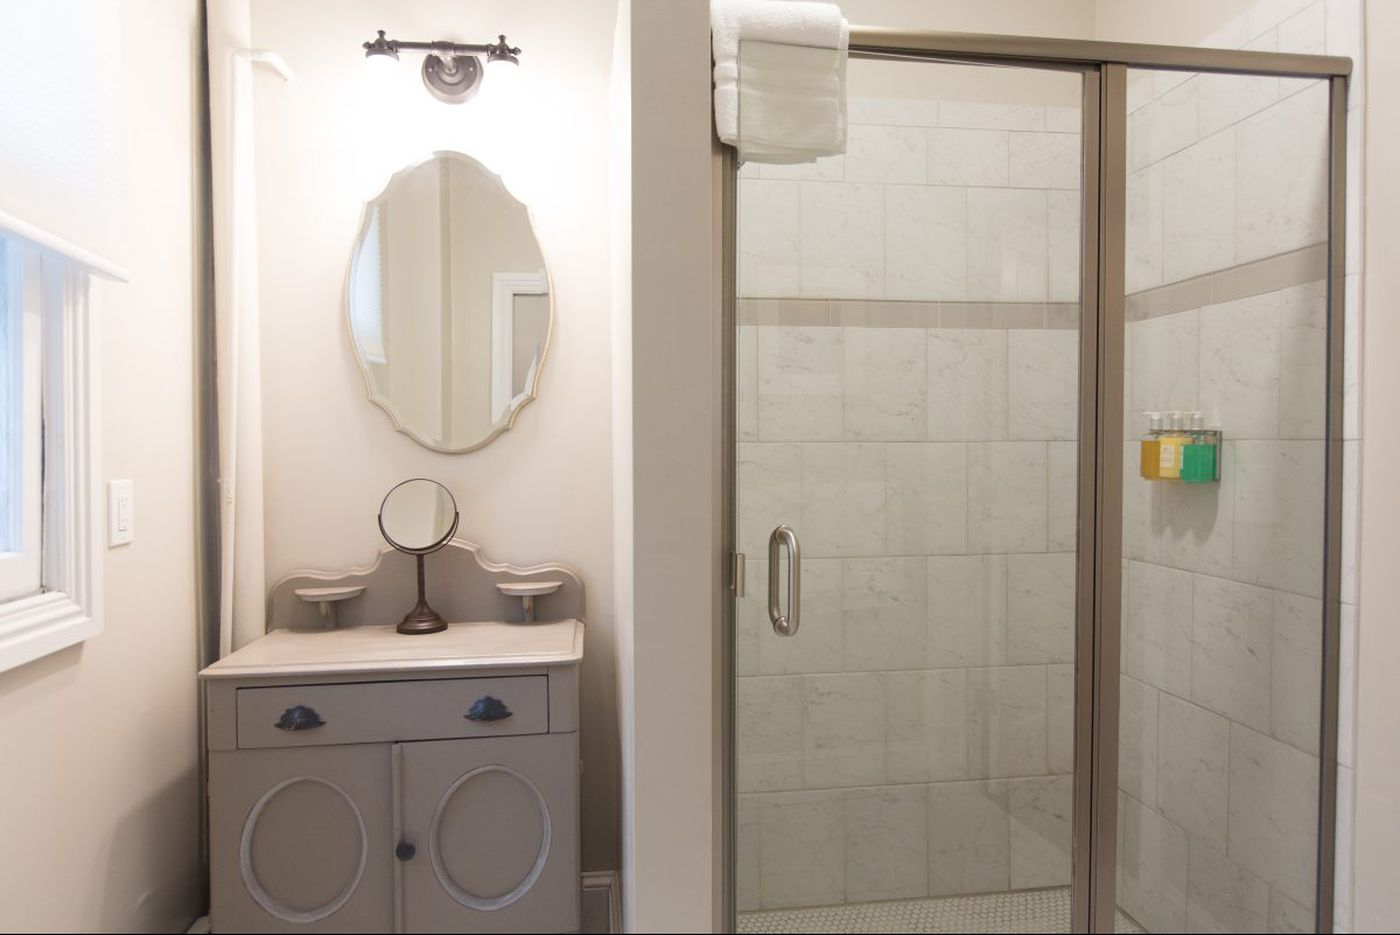 Ask Jennifer Adams: New shower curtains improve the view into small bathrooms